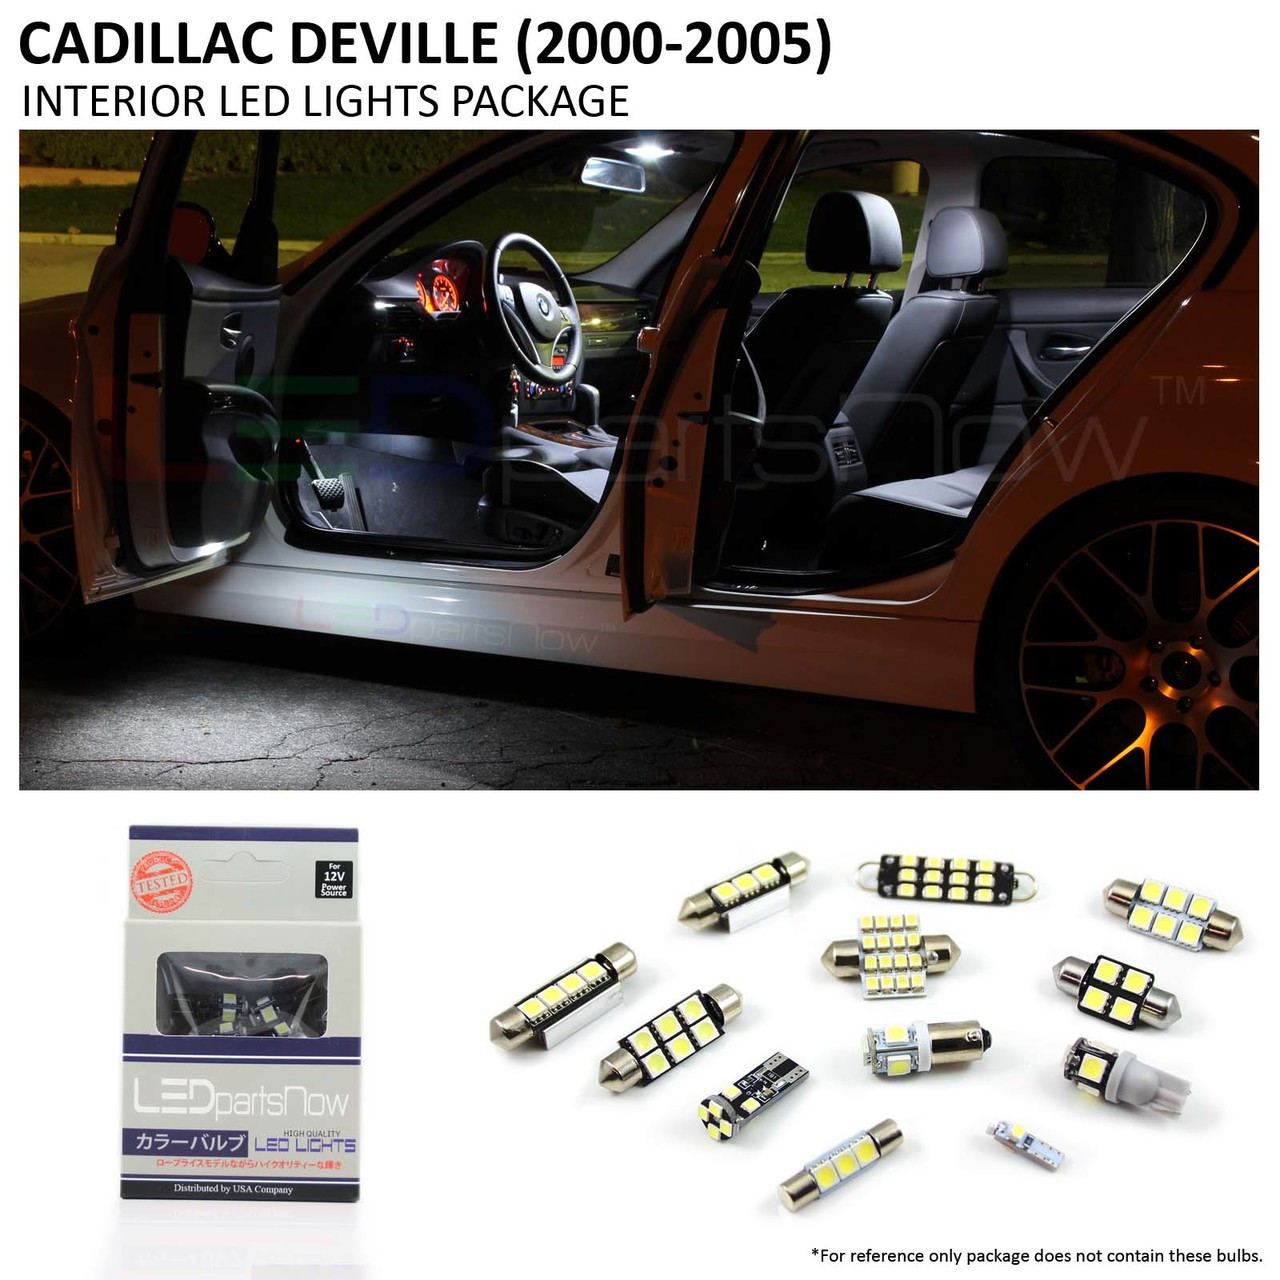 2000 2005 Cadillac Deville Interior Led Lights Package